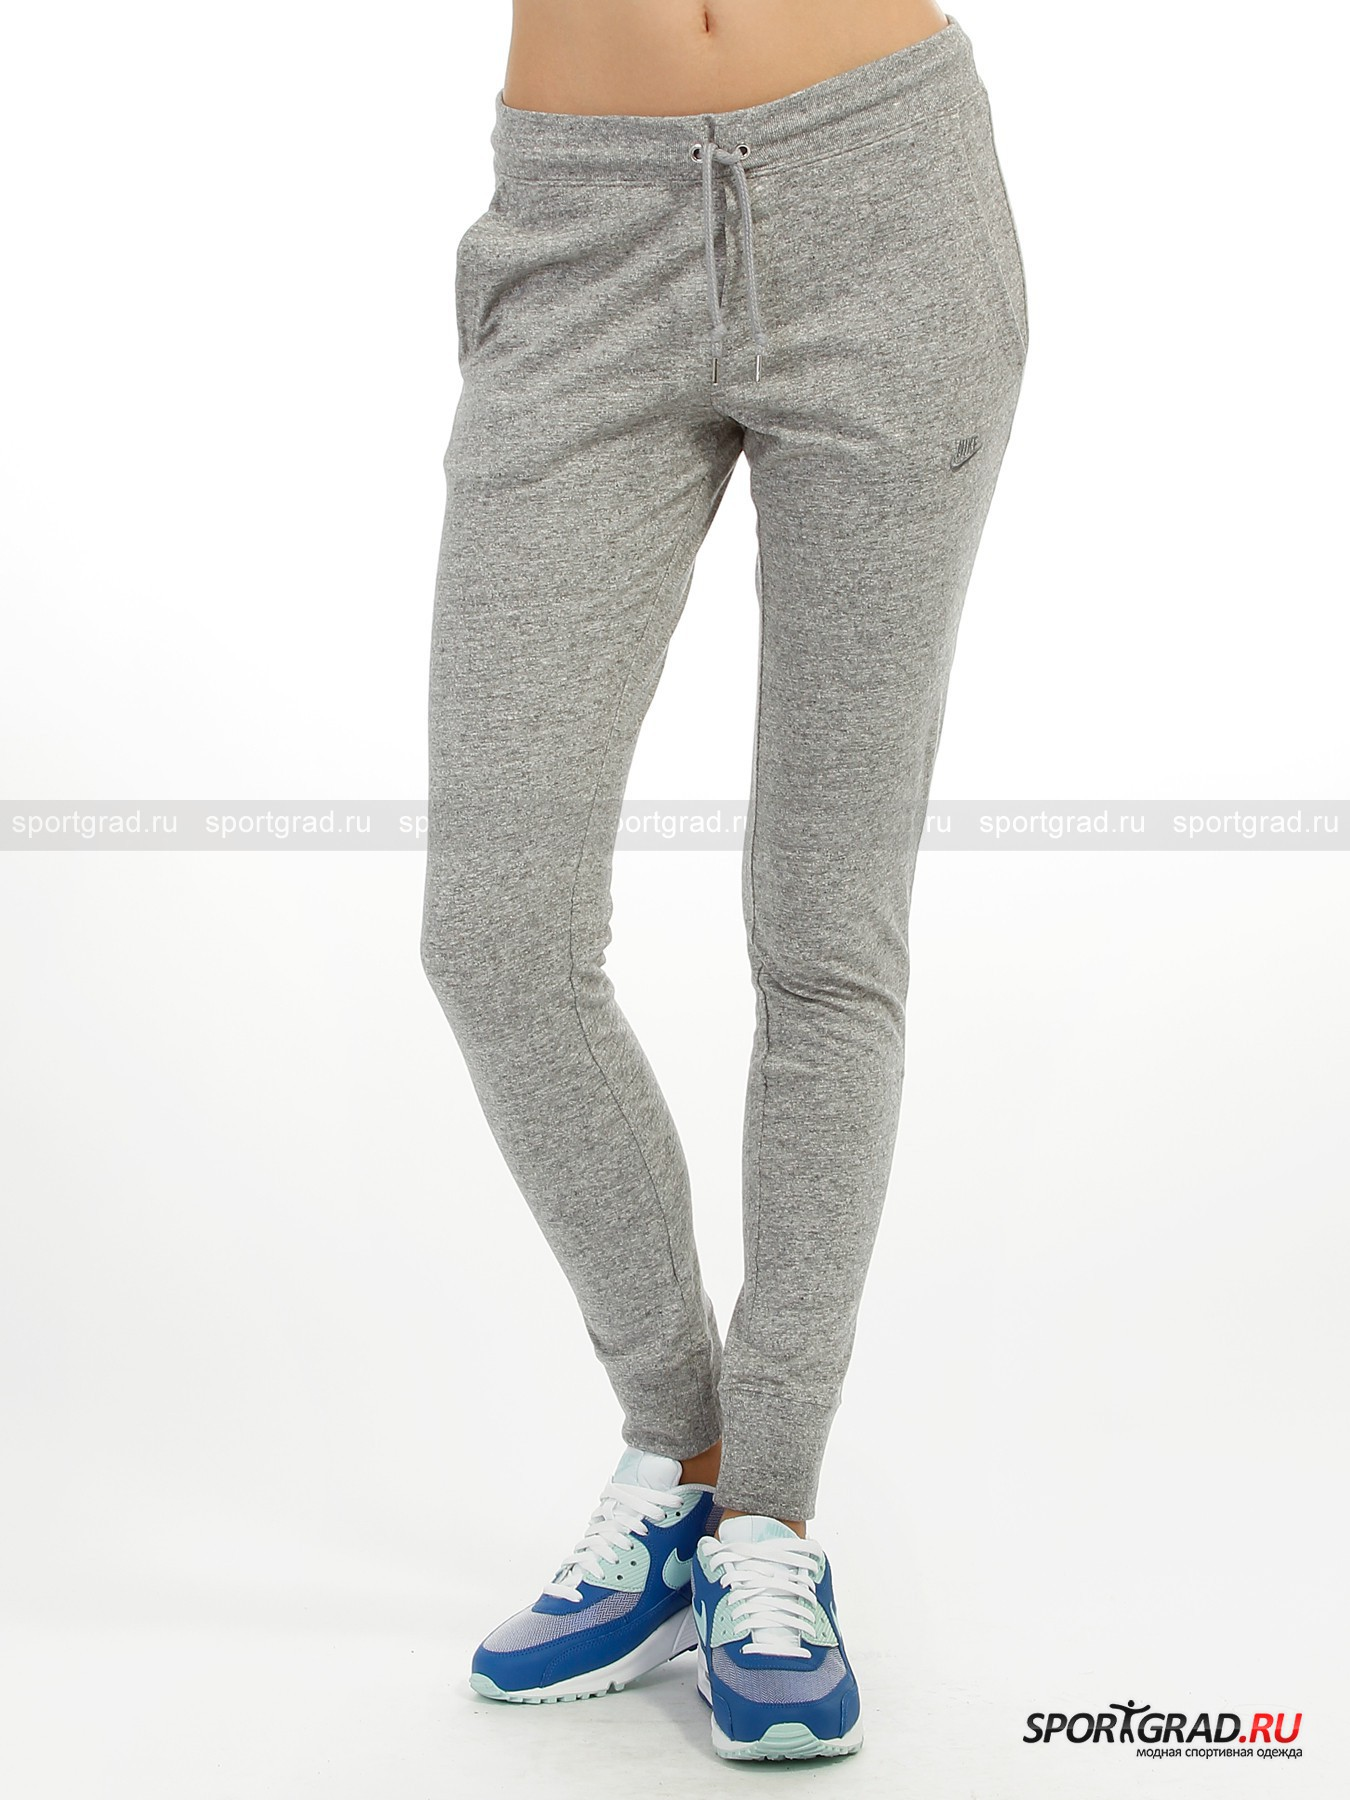 Брюки женские NIKE TIME OUT PANT NIKE